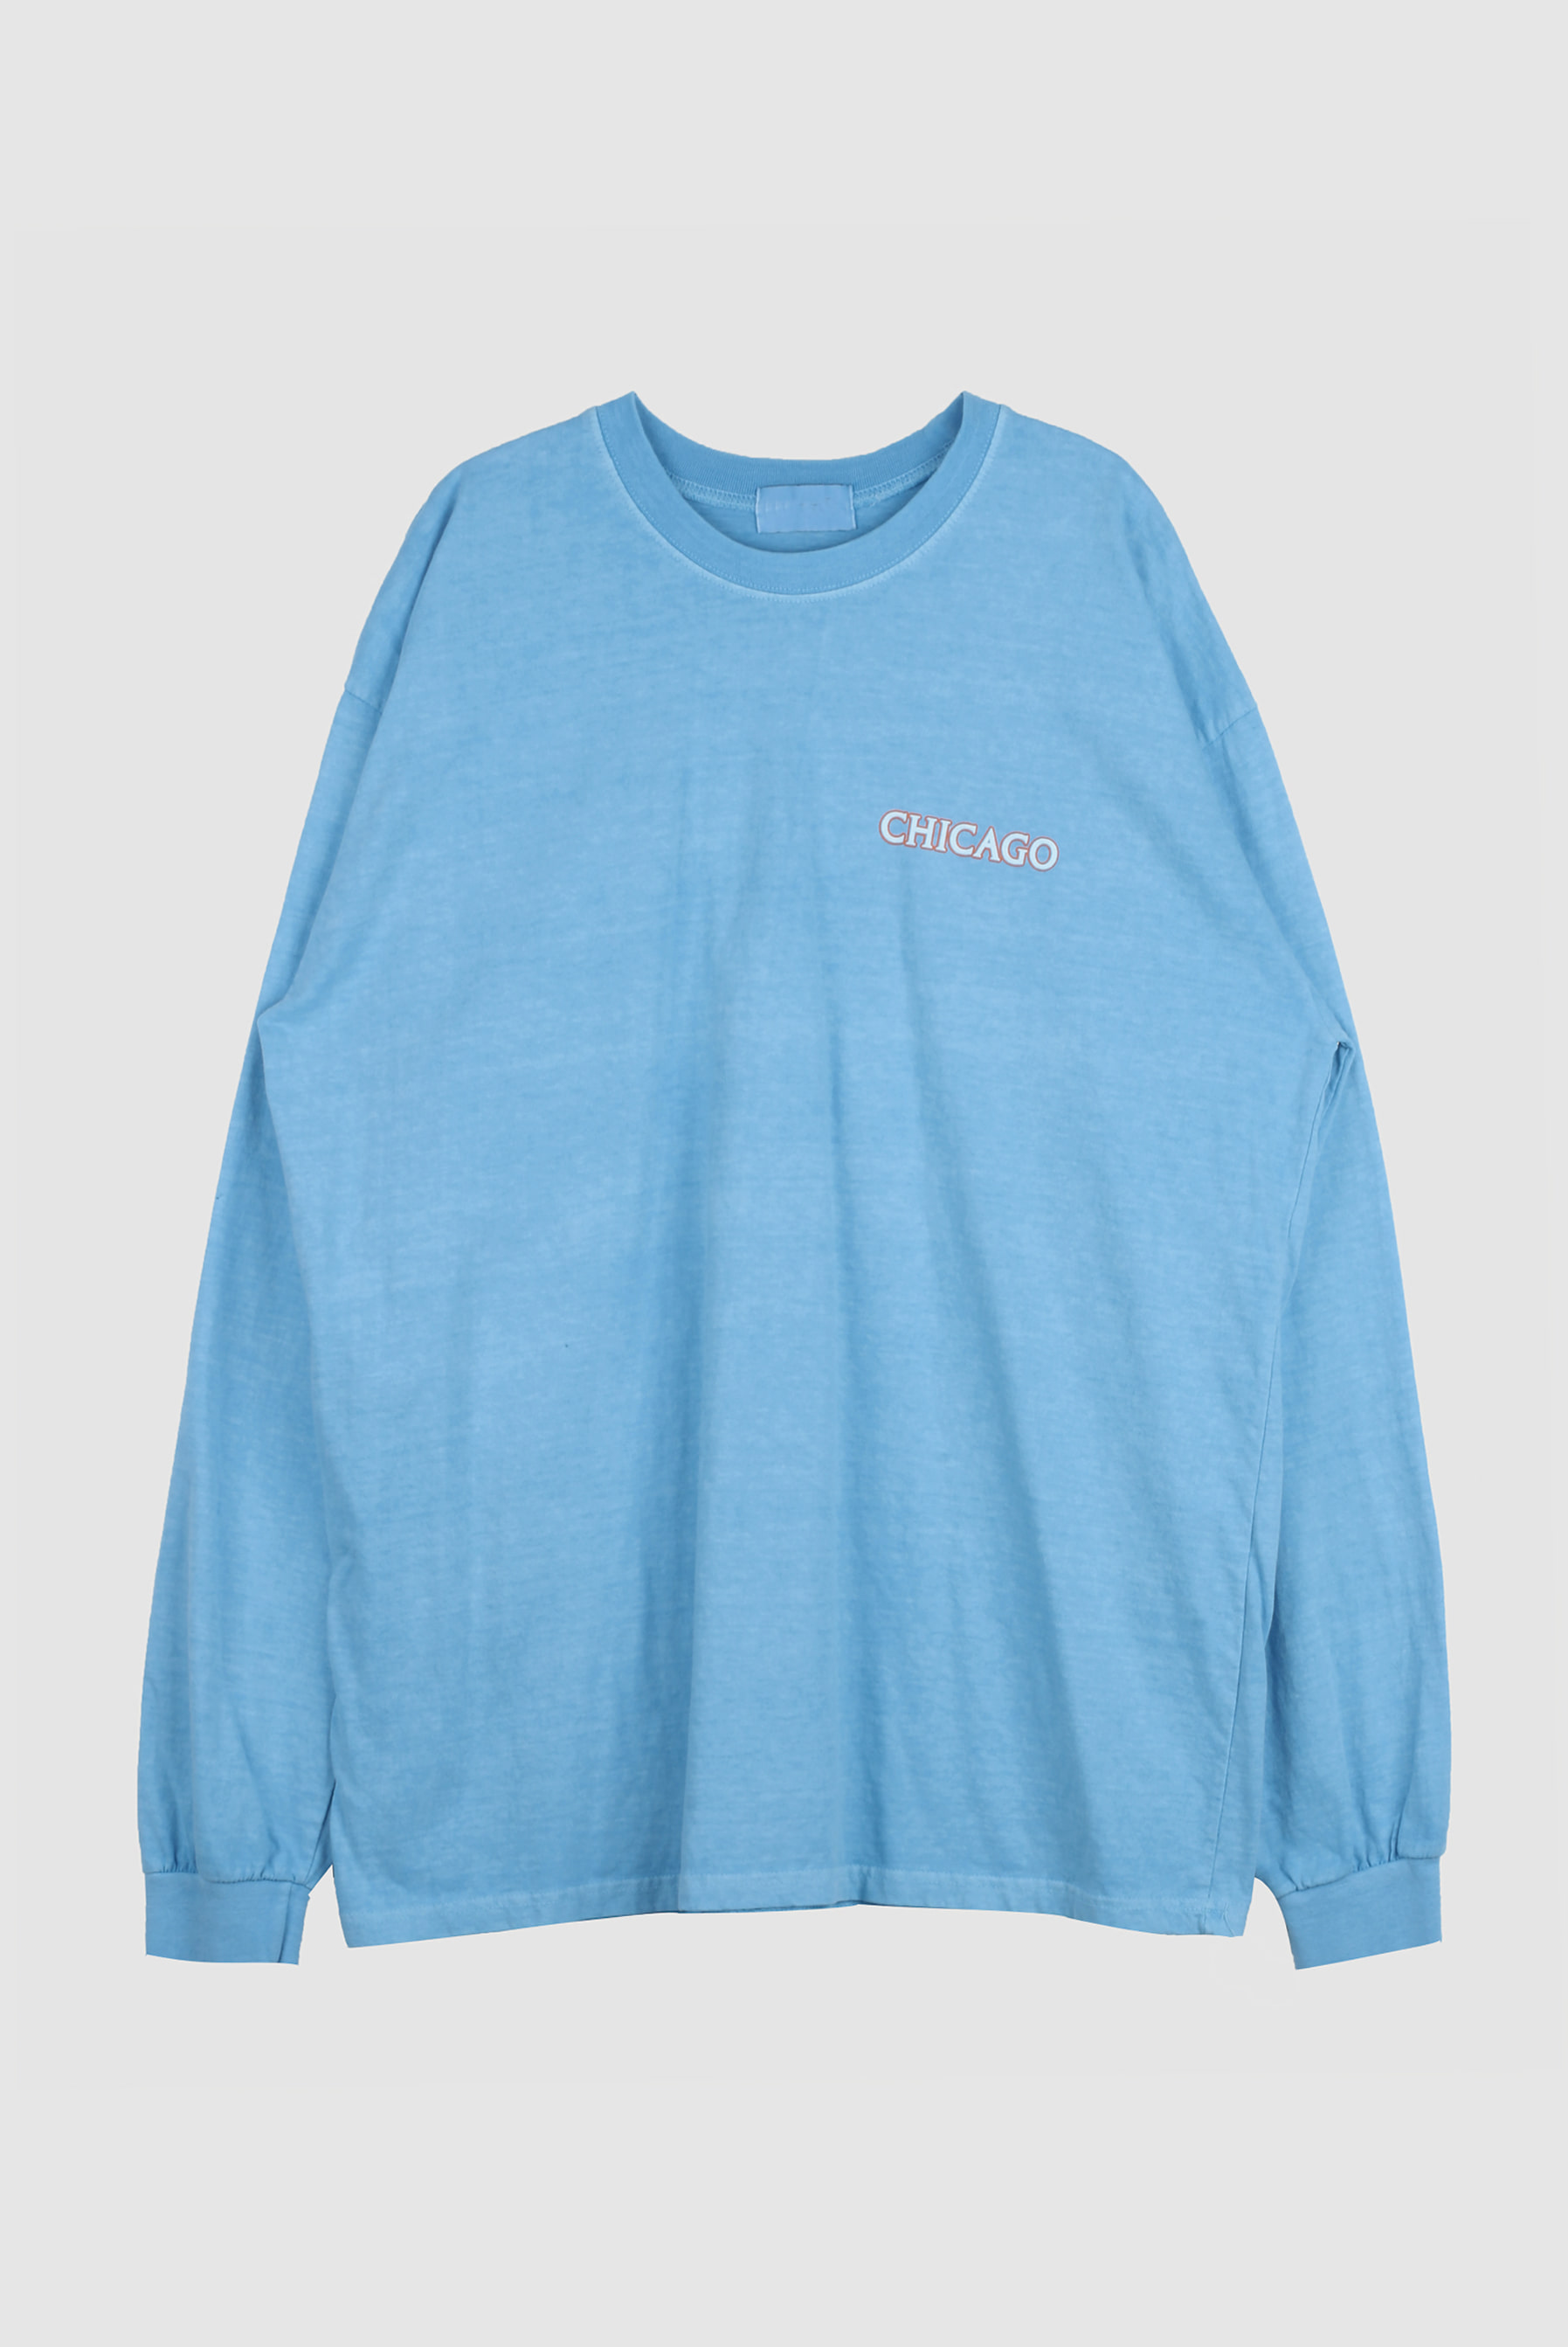 Chicago_Washing_Long sleeve